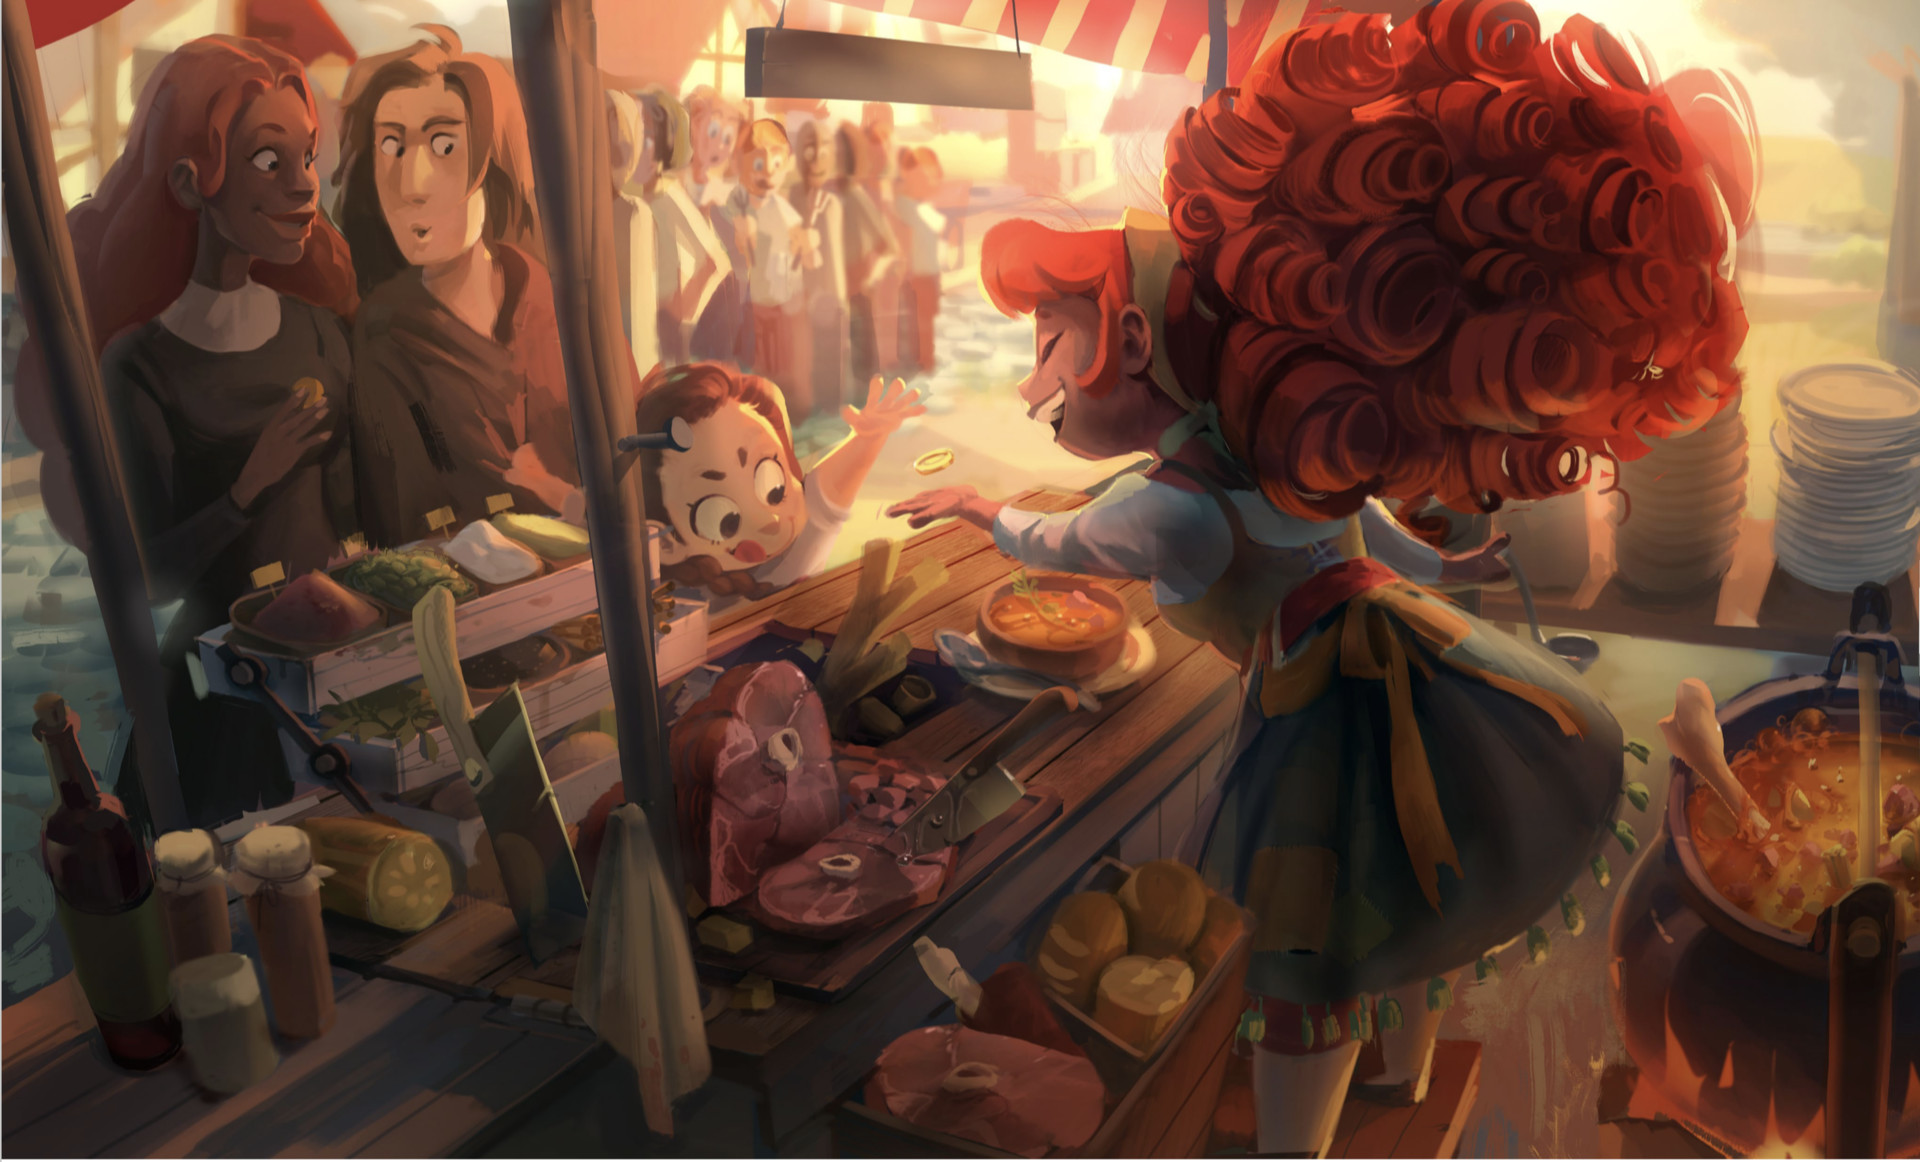 A fun scene painting of Tabby serving food behind her food cart.